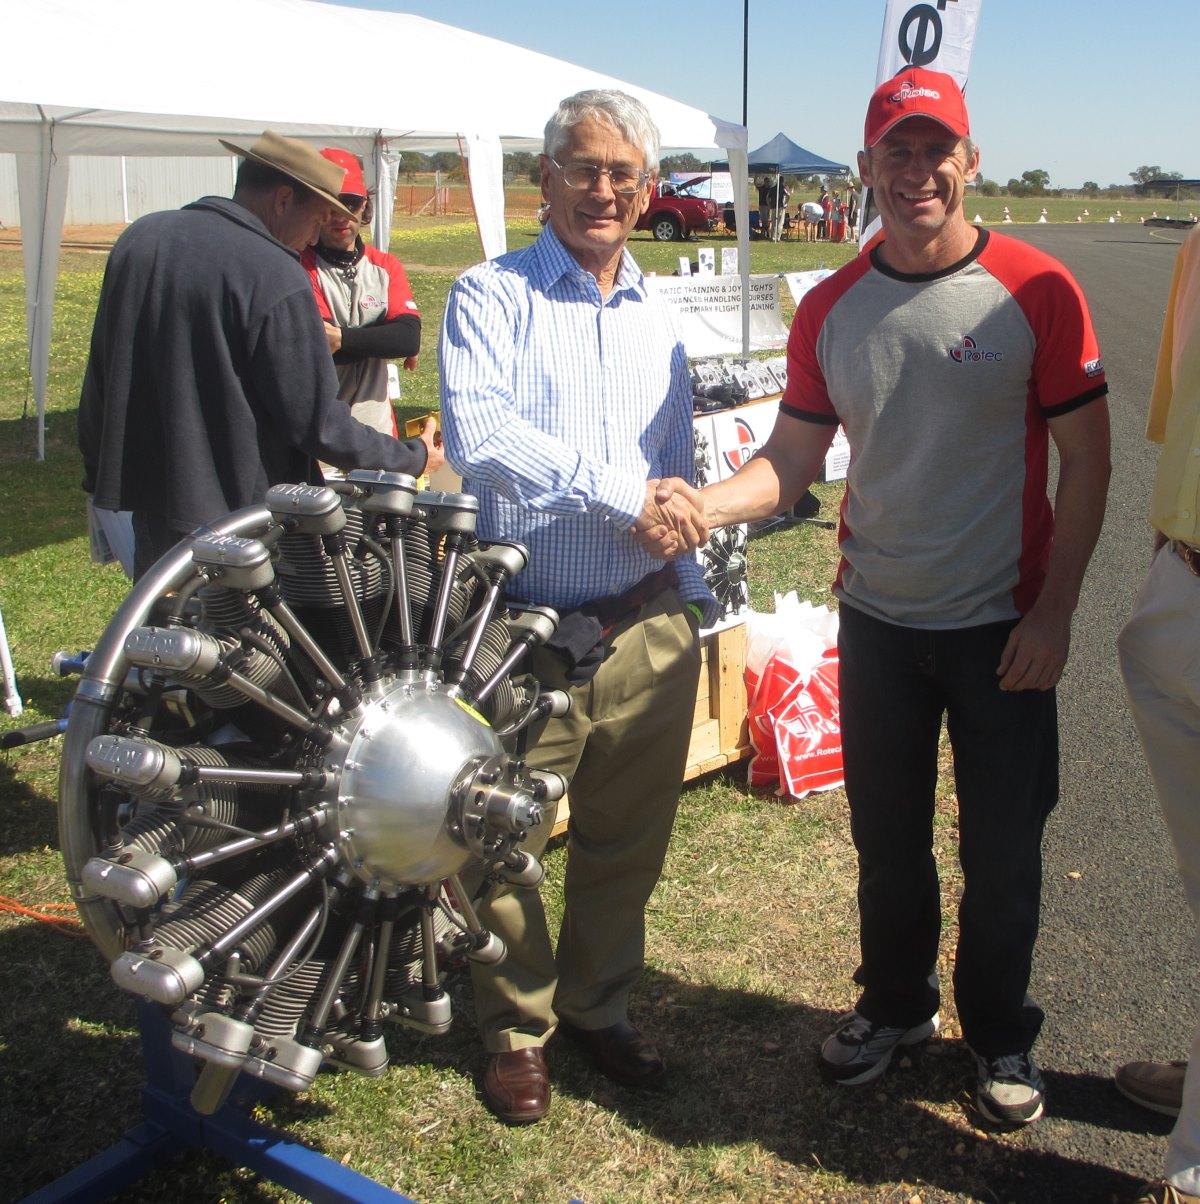 Dick Smith and Paul Shake on it 09-2013